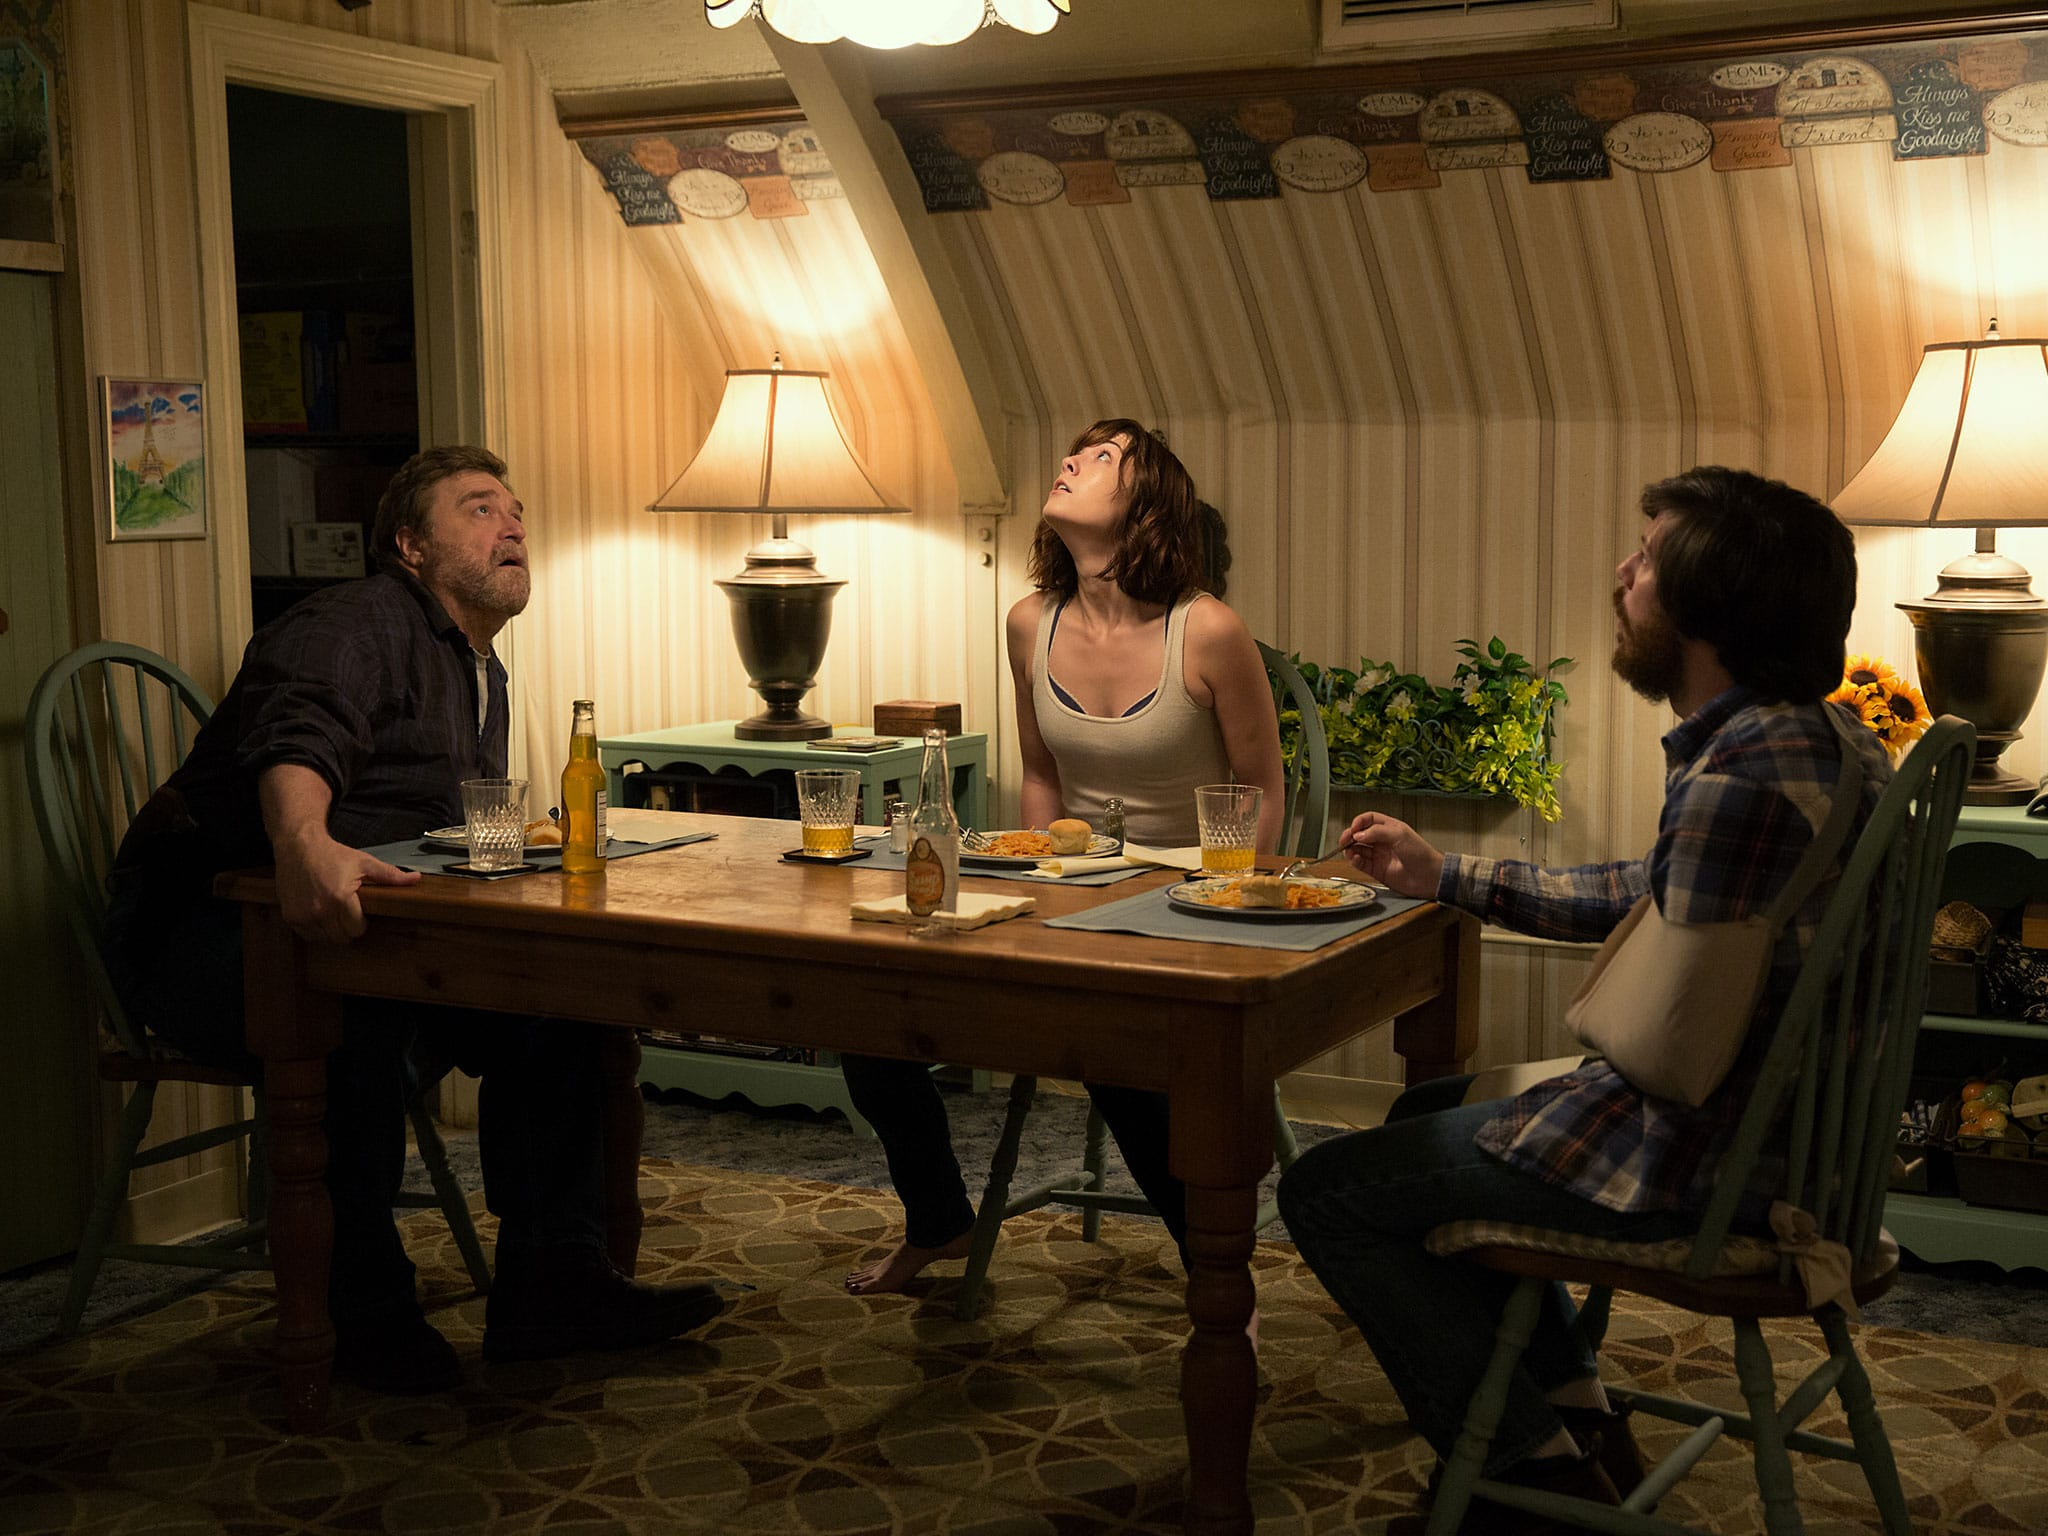 10 Cloverfield Lane HQ wallpapers